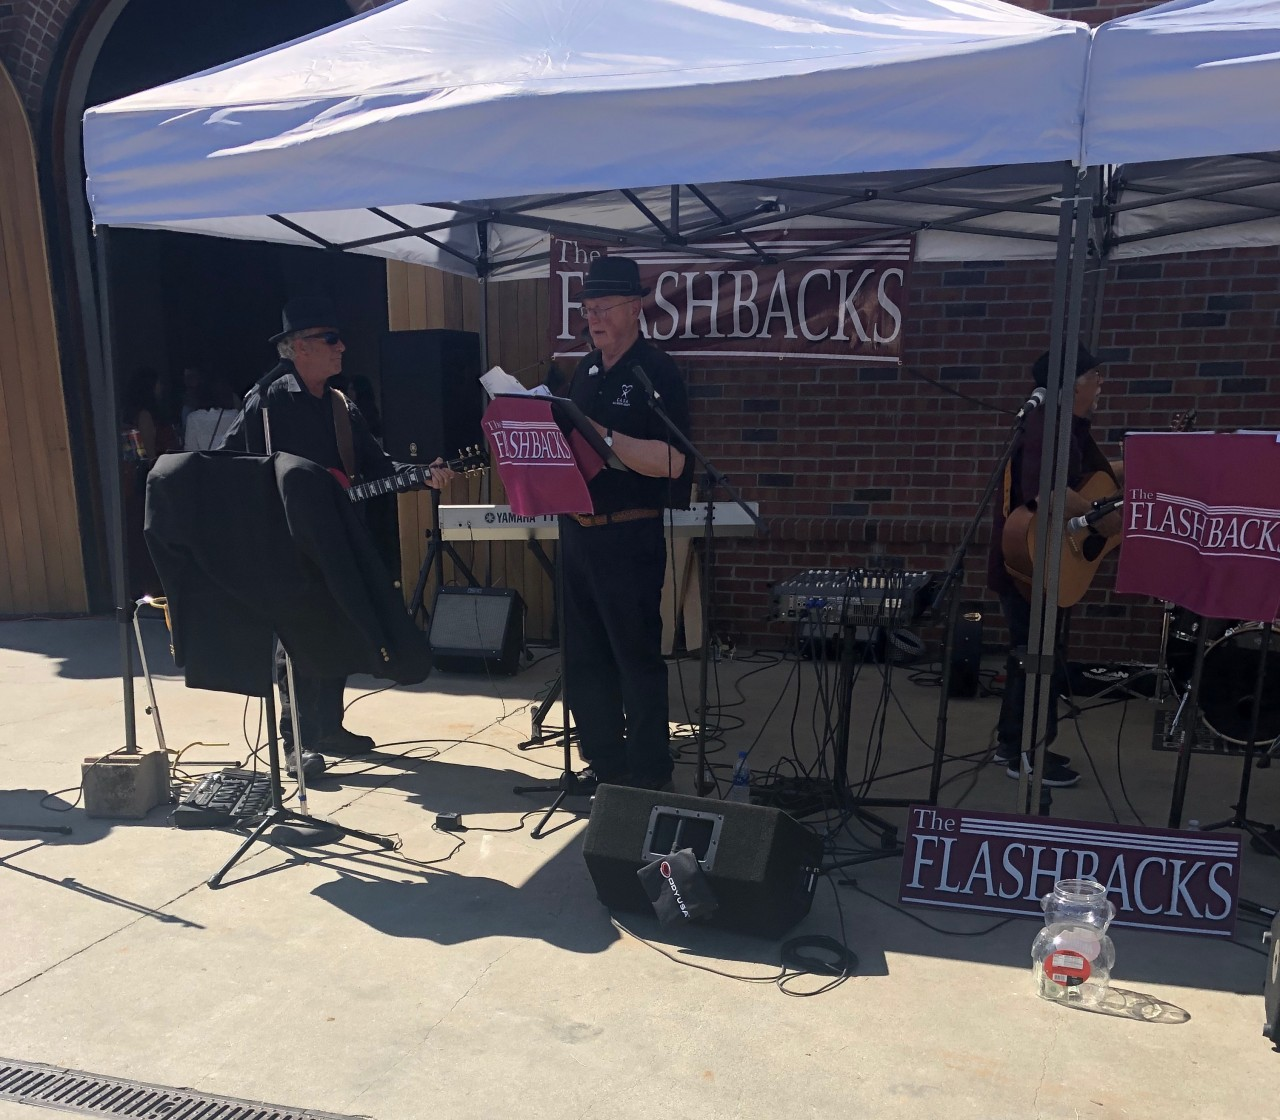 The Flashbacks performed live music at the event.